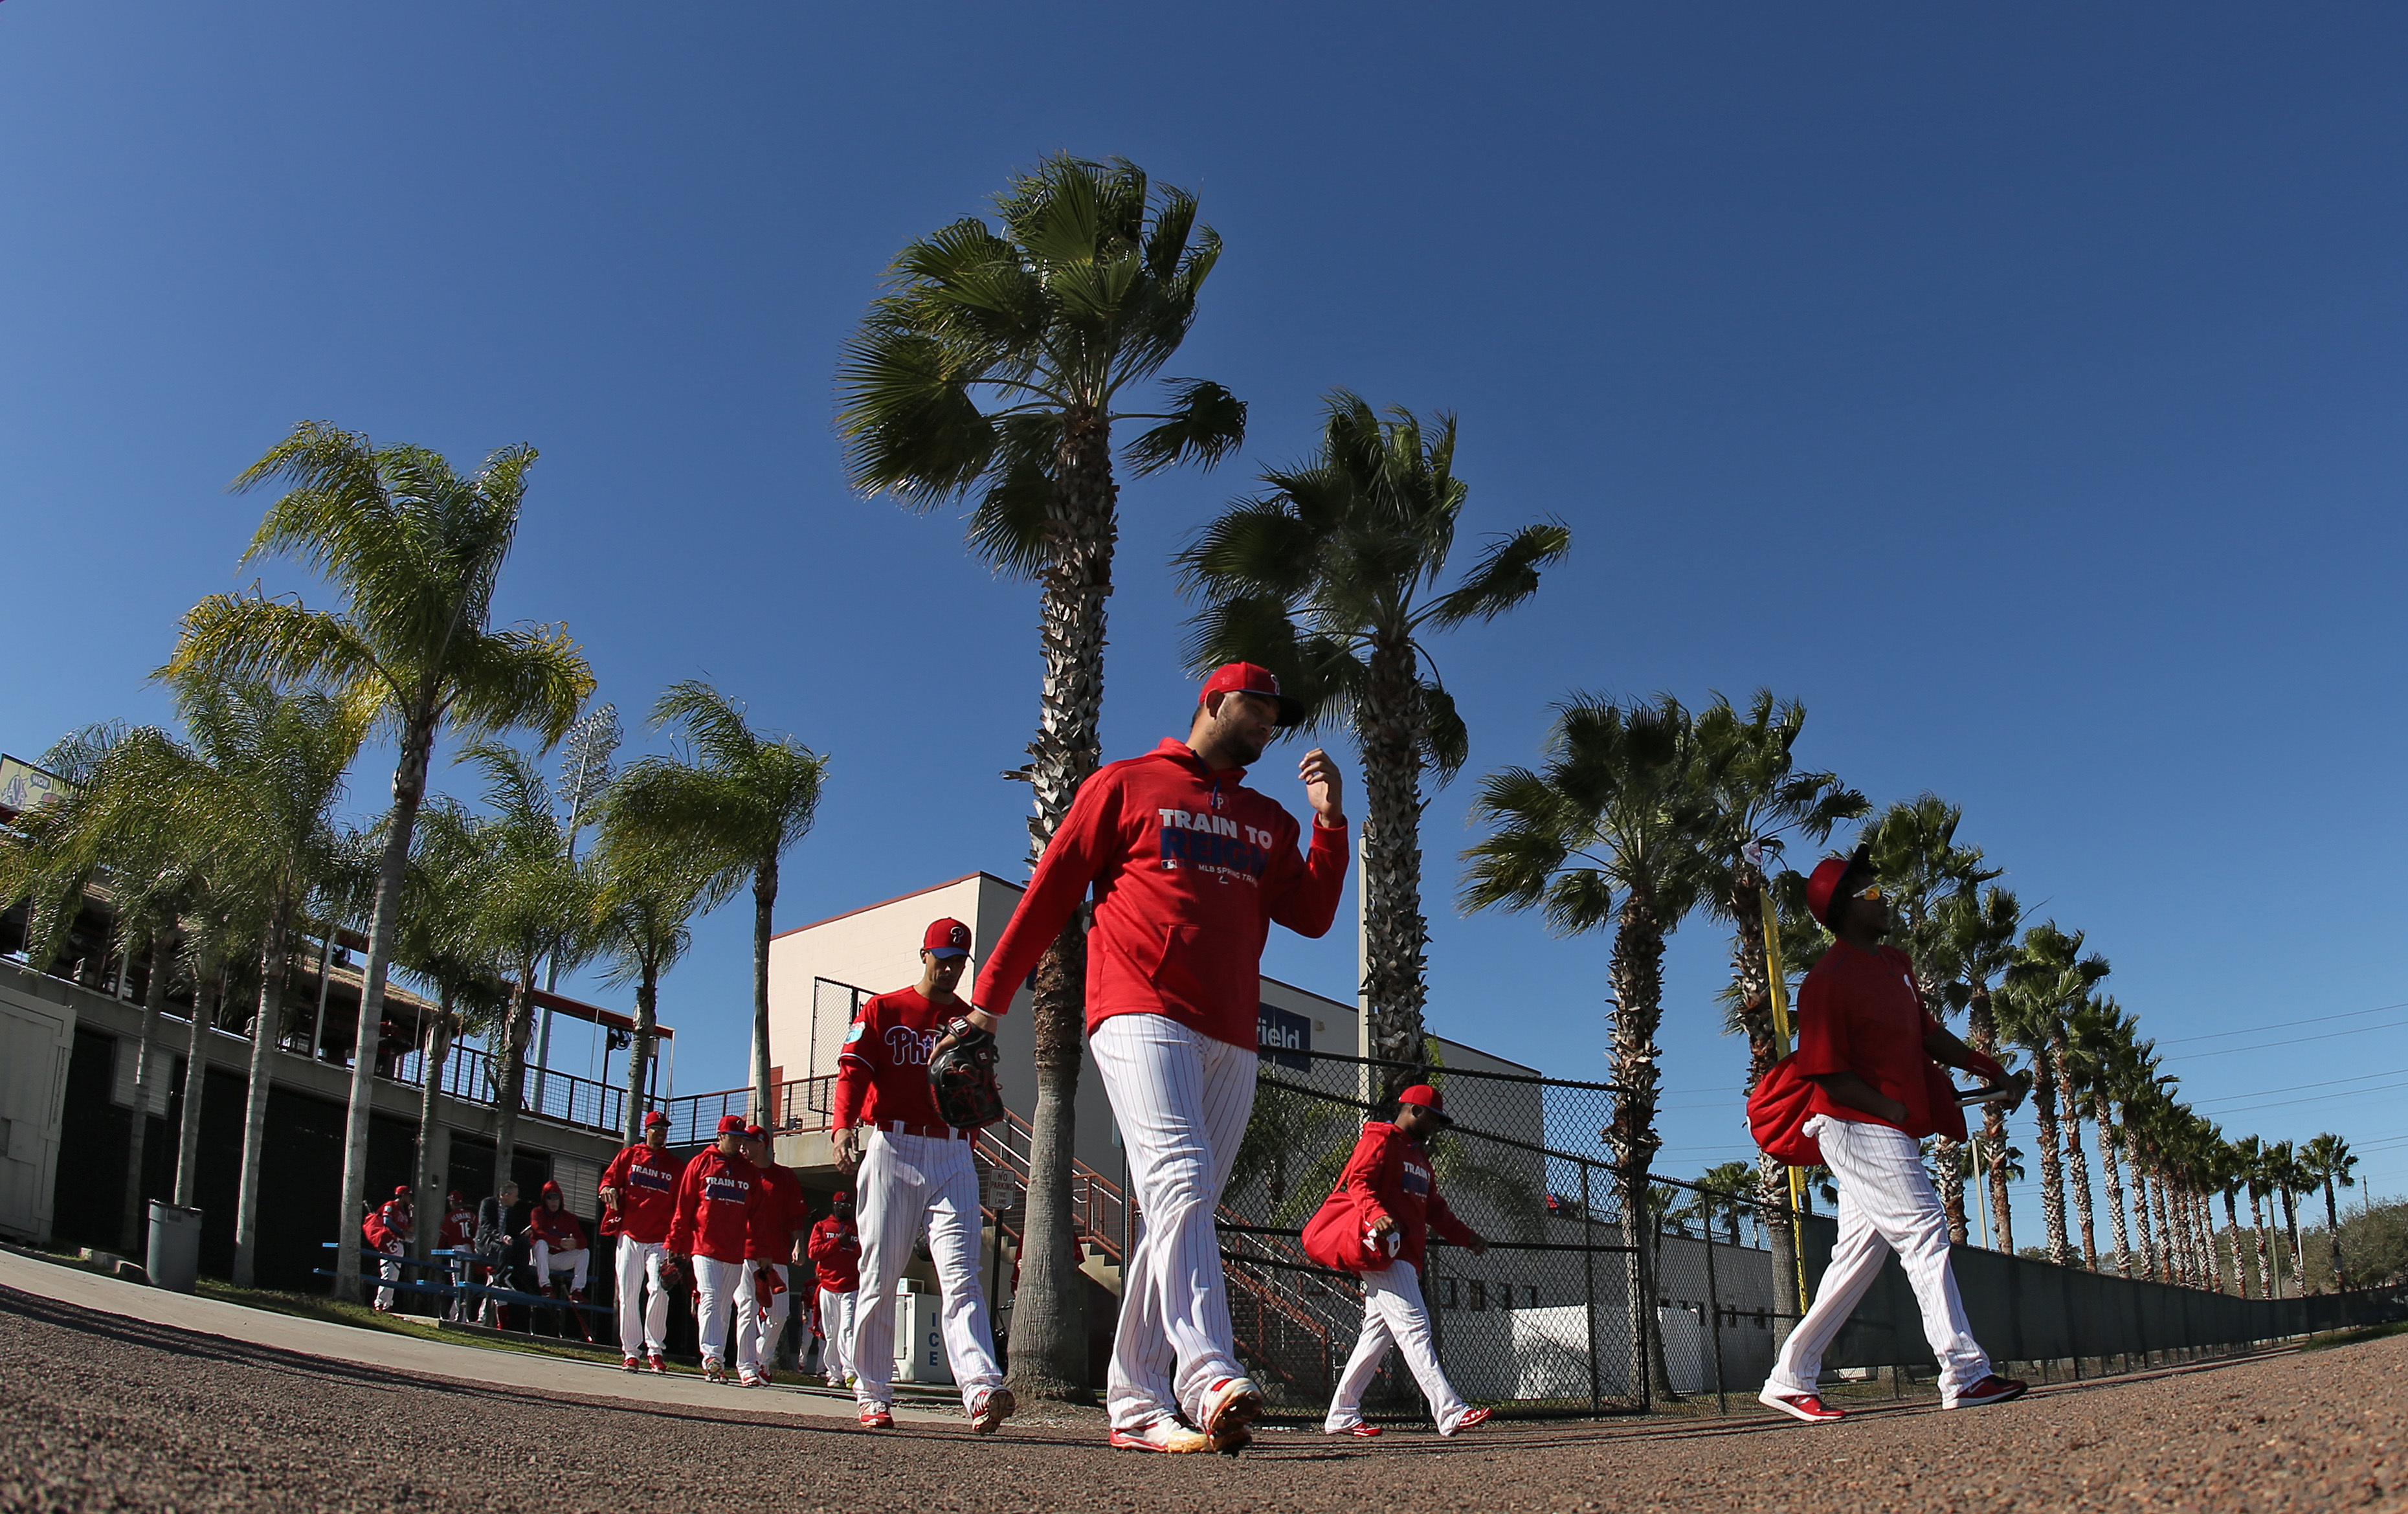 Philadelphia Phillies players head to the field for a  spring training baseball workout, Friday, Feb. 26, 2016, in Clearwater, Fla. (AP Photo/Chris O'Meara)